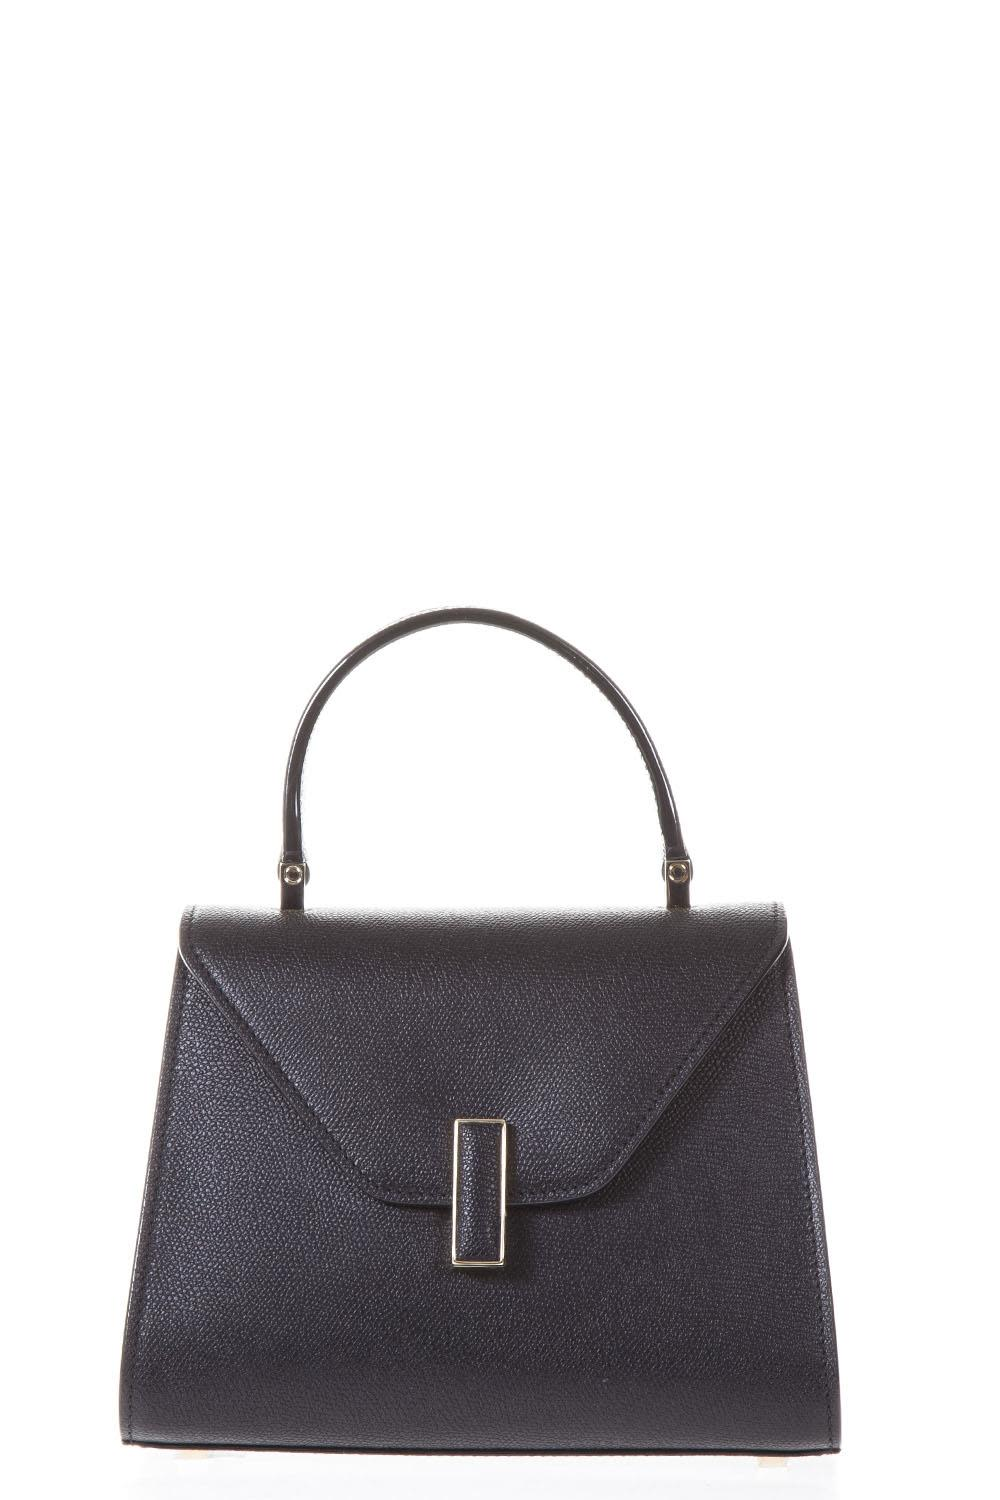 ISIDE BLACK LEATHER HAND BAG